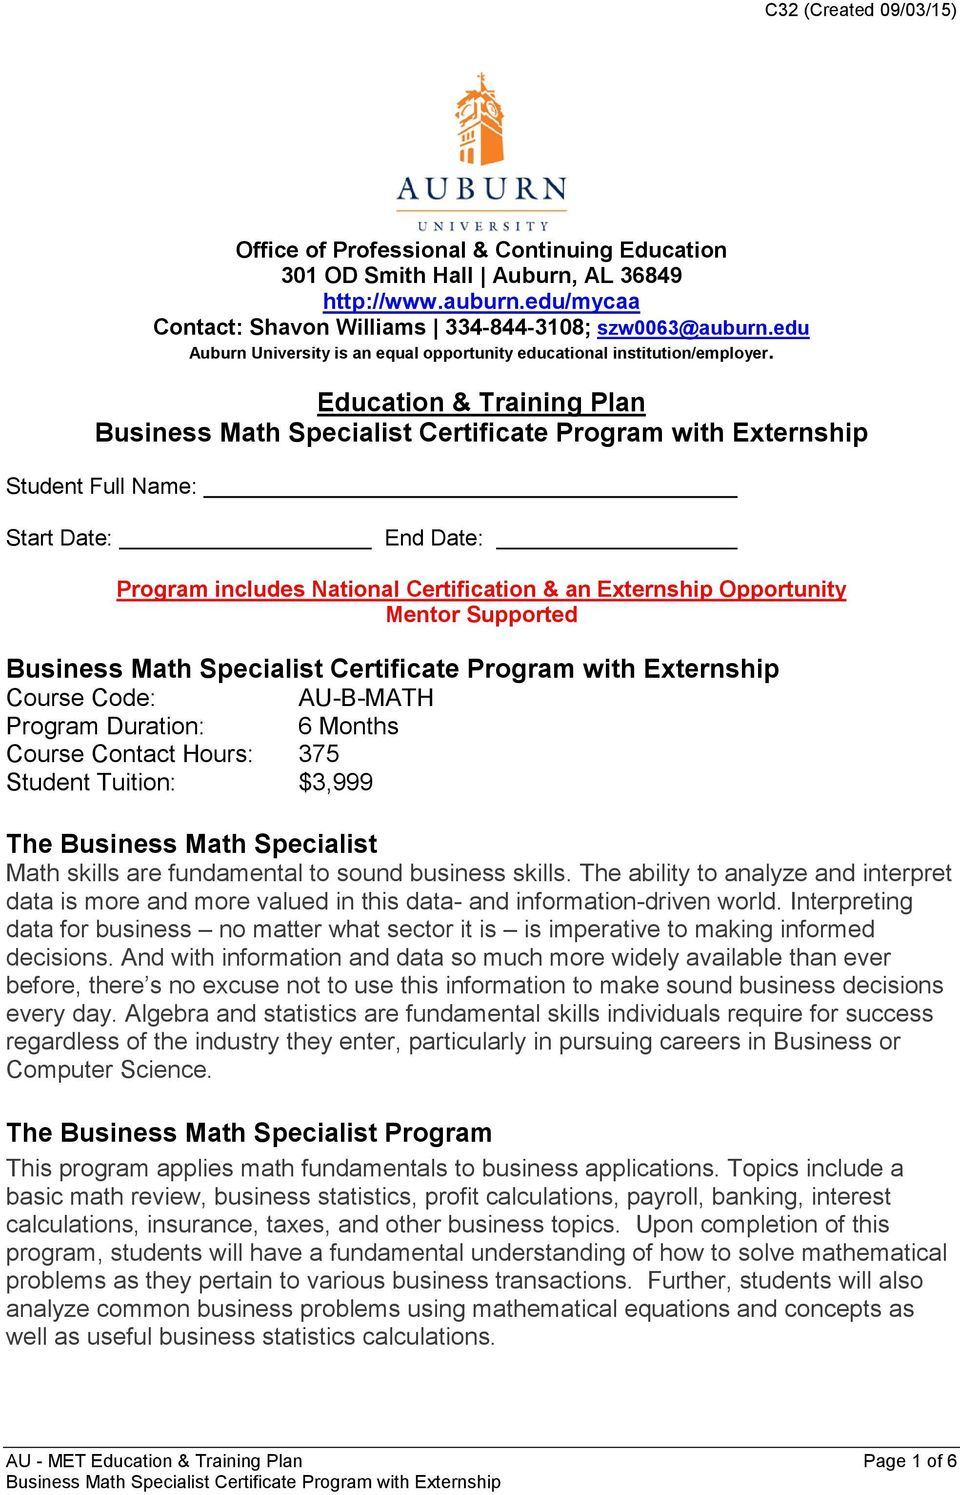 Education & Training Plan Student Full Name: Start Date: End Date: Program includes National Certification & an Externship Opportunity Mentor Supported Course Code: AU-B-MATH Program Duration: 6